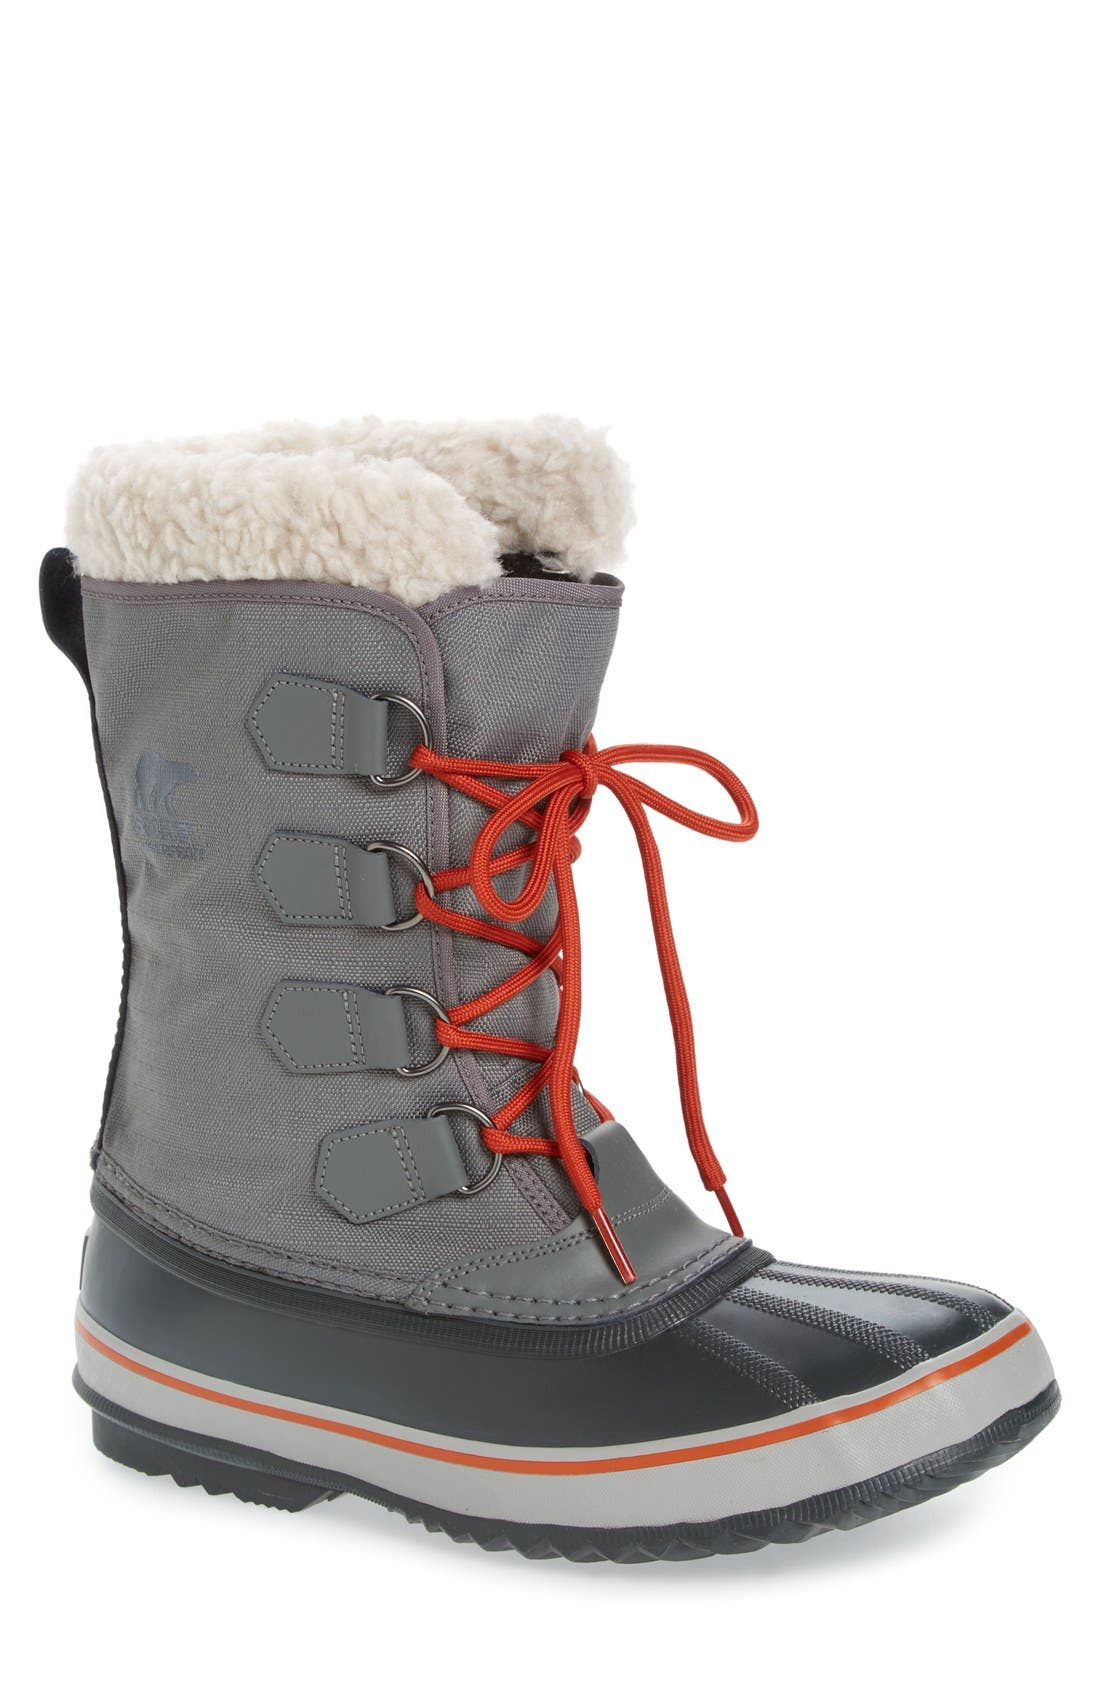 '1964 PAC' Snow Boot,                             Main thumbnail 1, color,                             DARK FOG/ SHARK GREY